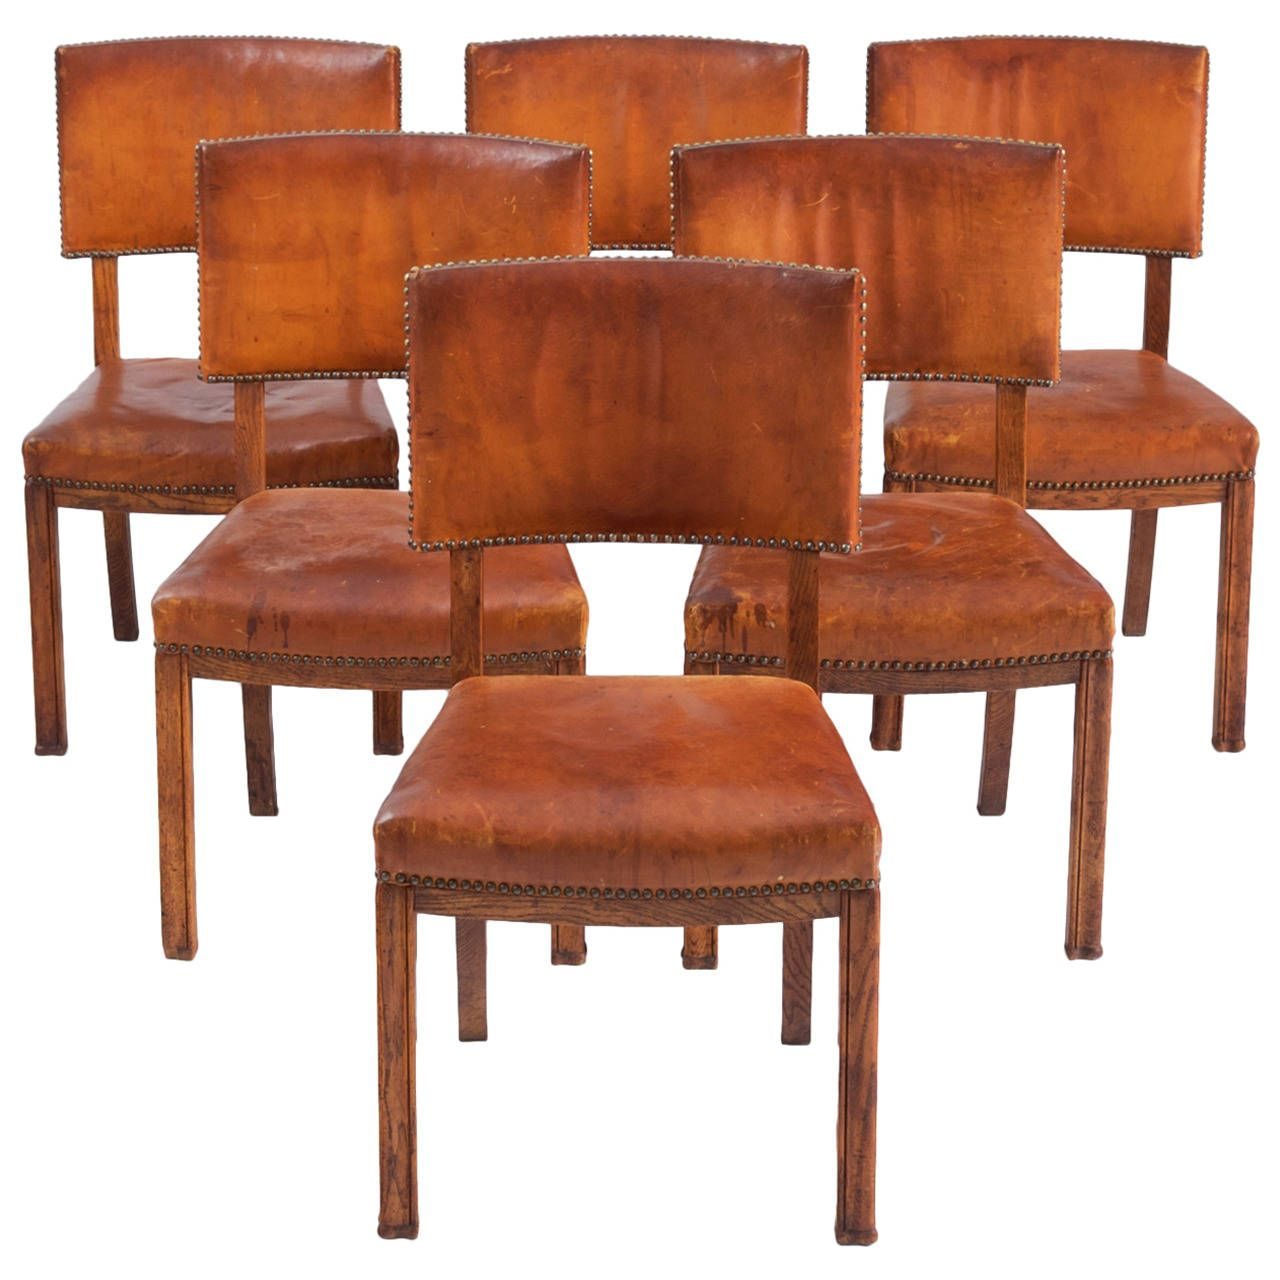 Danish set of cognac leather dining chairs from a unique